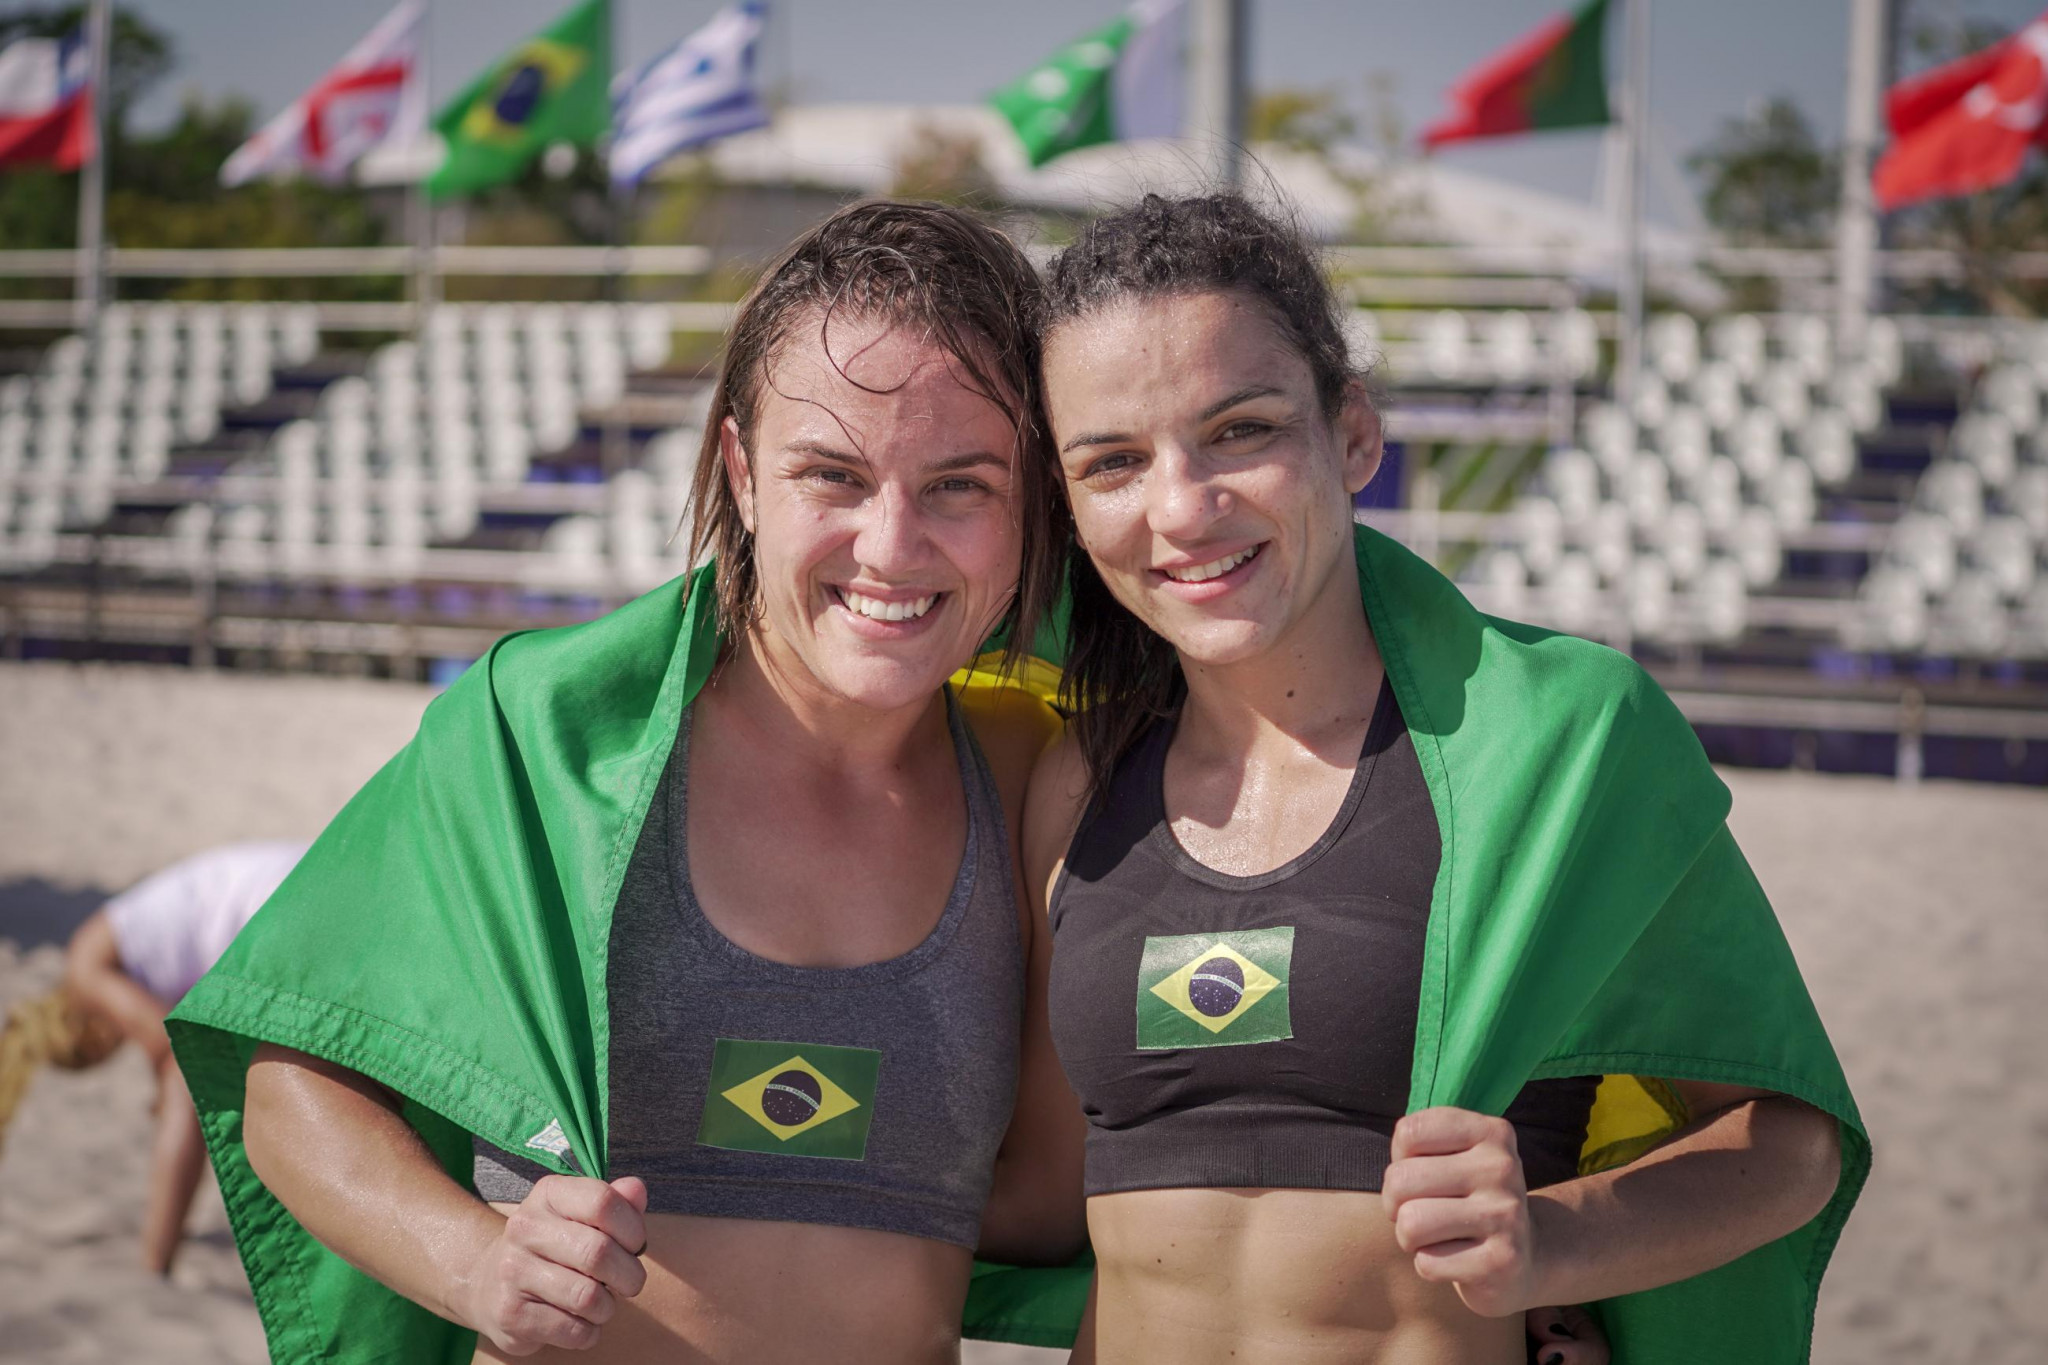 Hosts Brazil and Georgia earn clean sweeps at UWW Beach Wrestling World Series